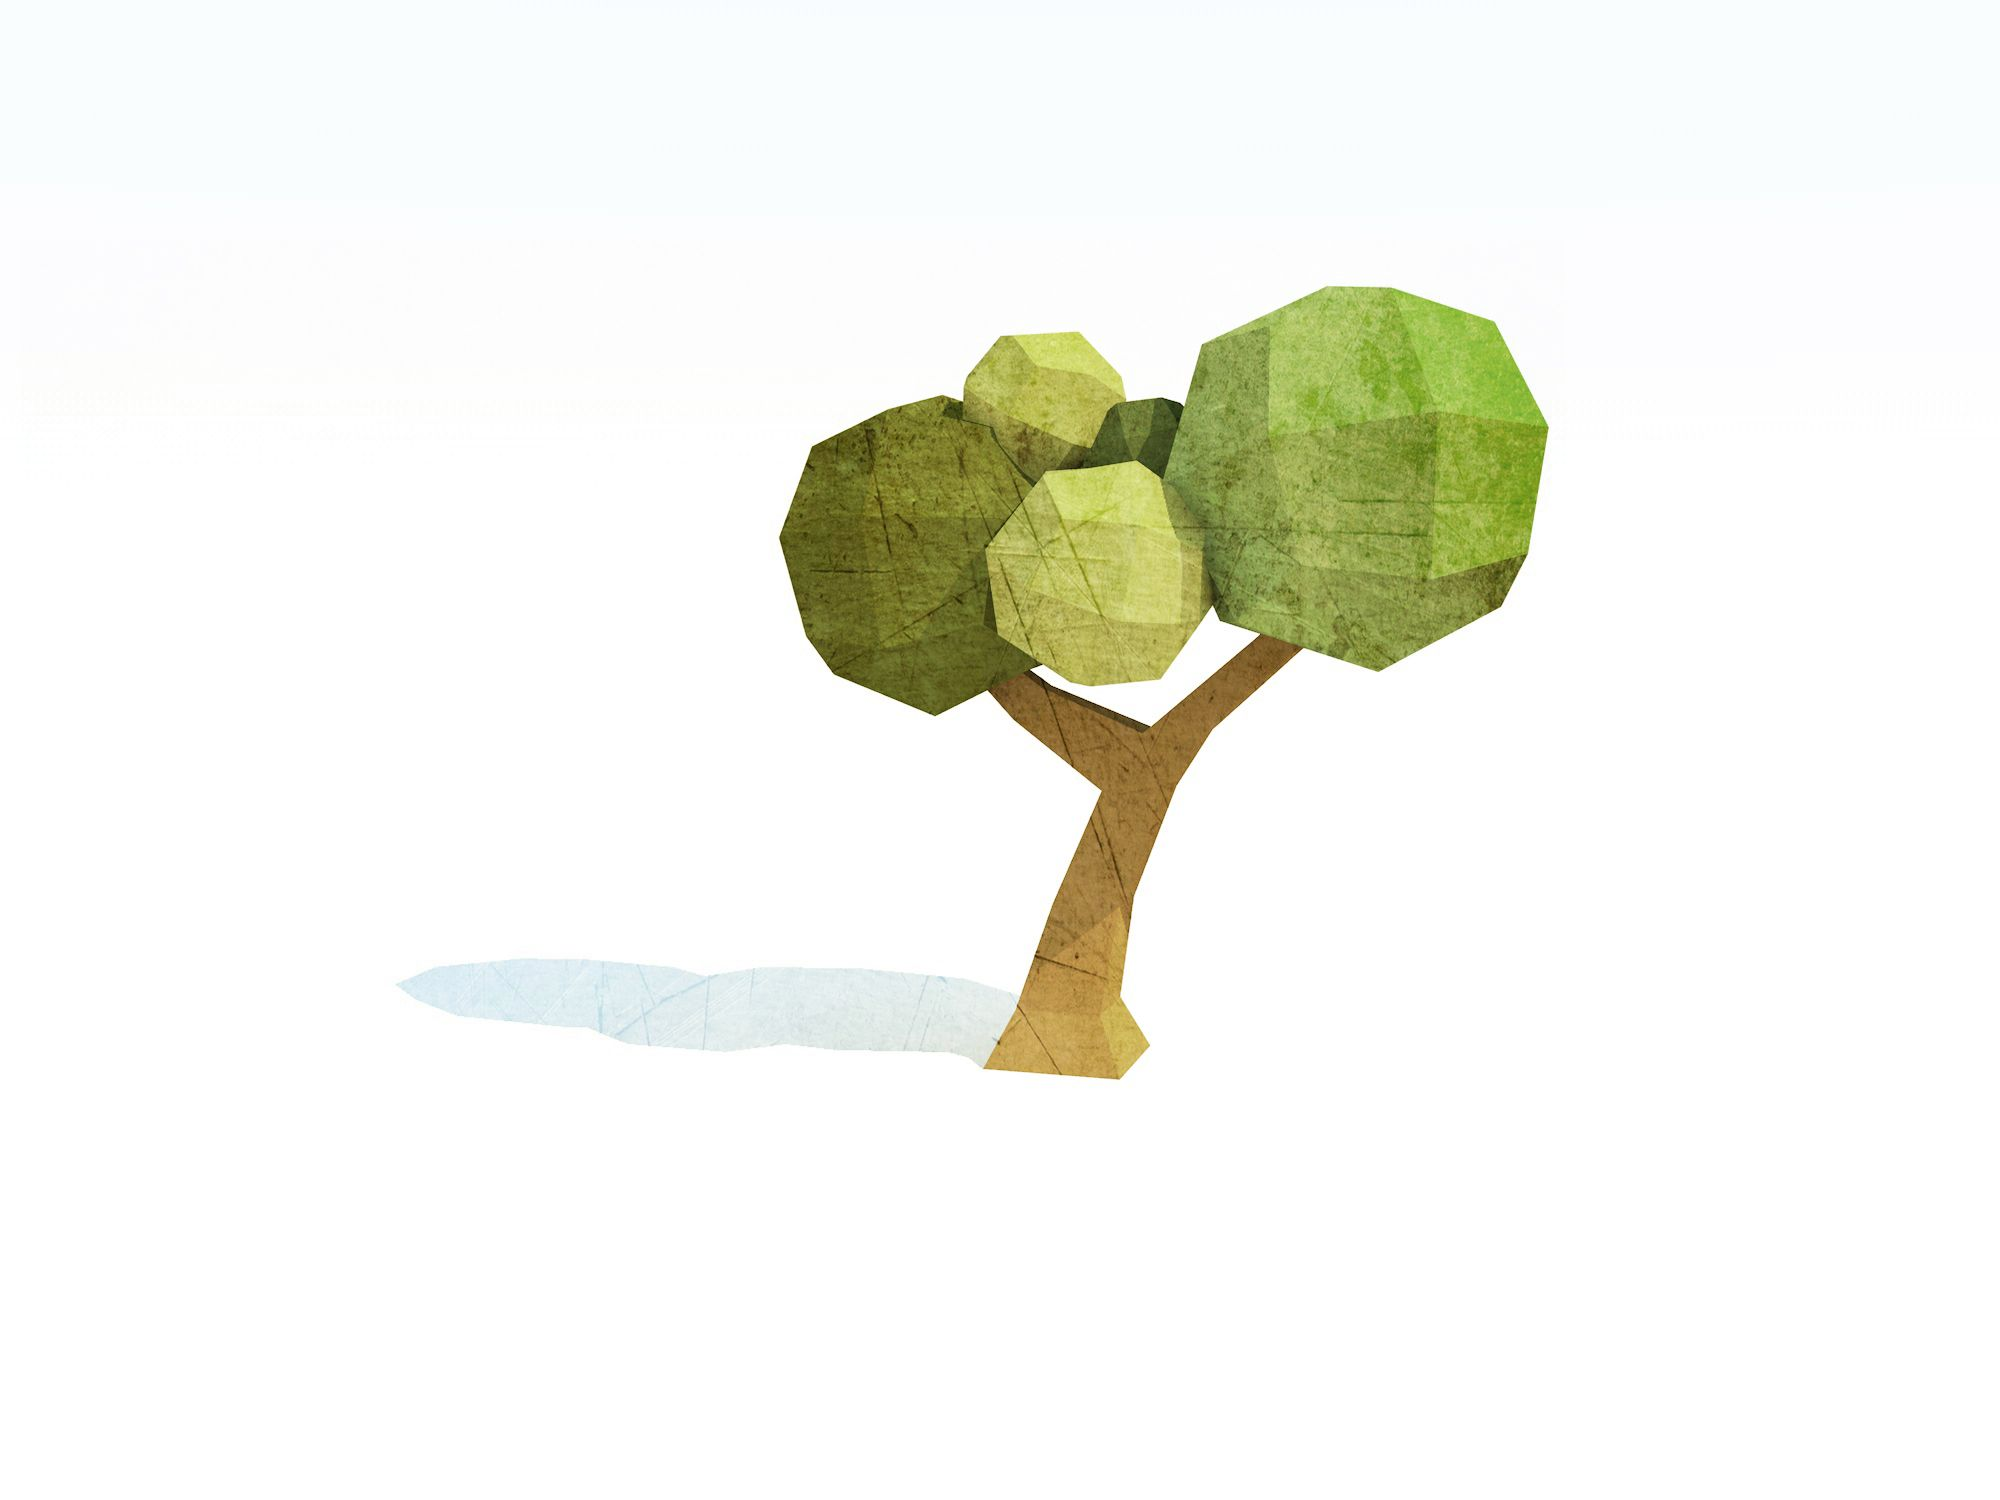 61 best Tree low poly images on Pinterest | Low poly, Game art and ...